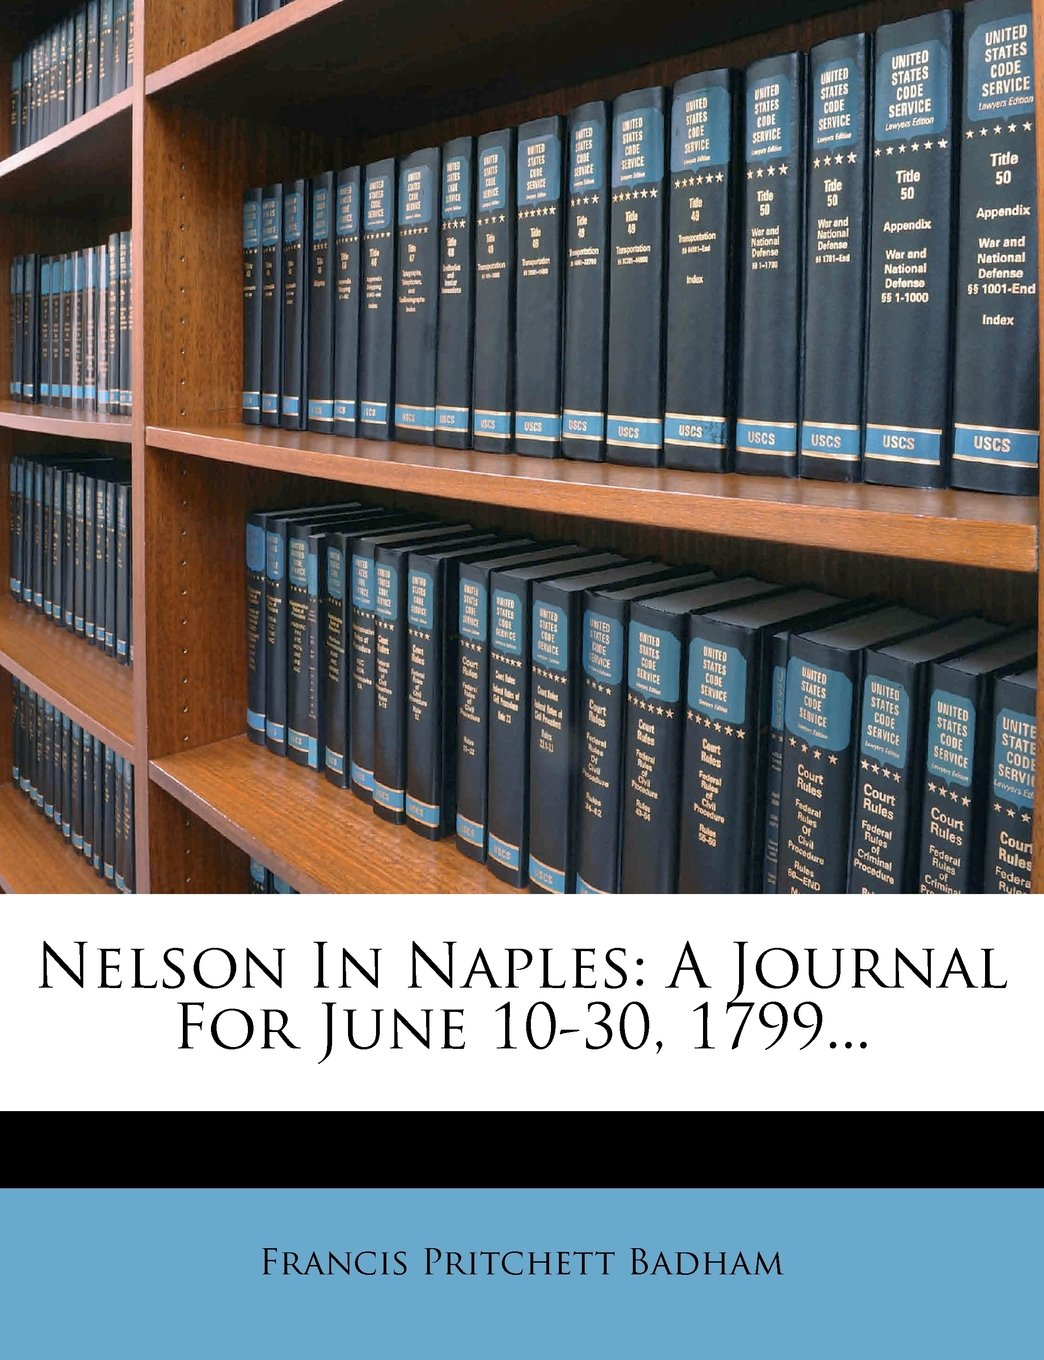 Nelson In Naples: A Journal For June 10-30, 1799... PDF